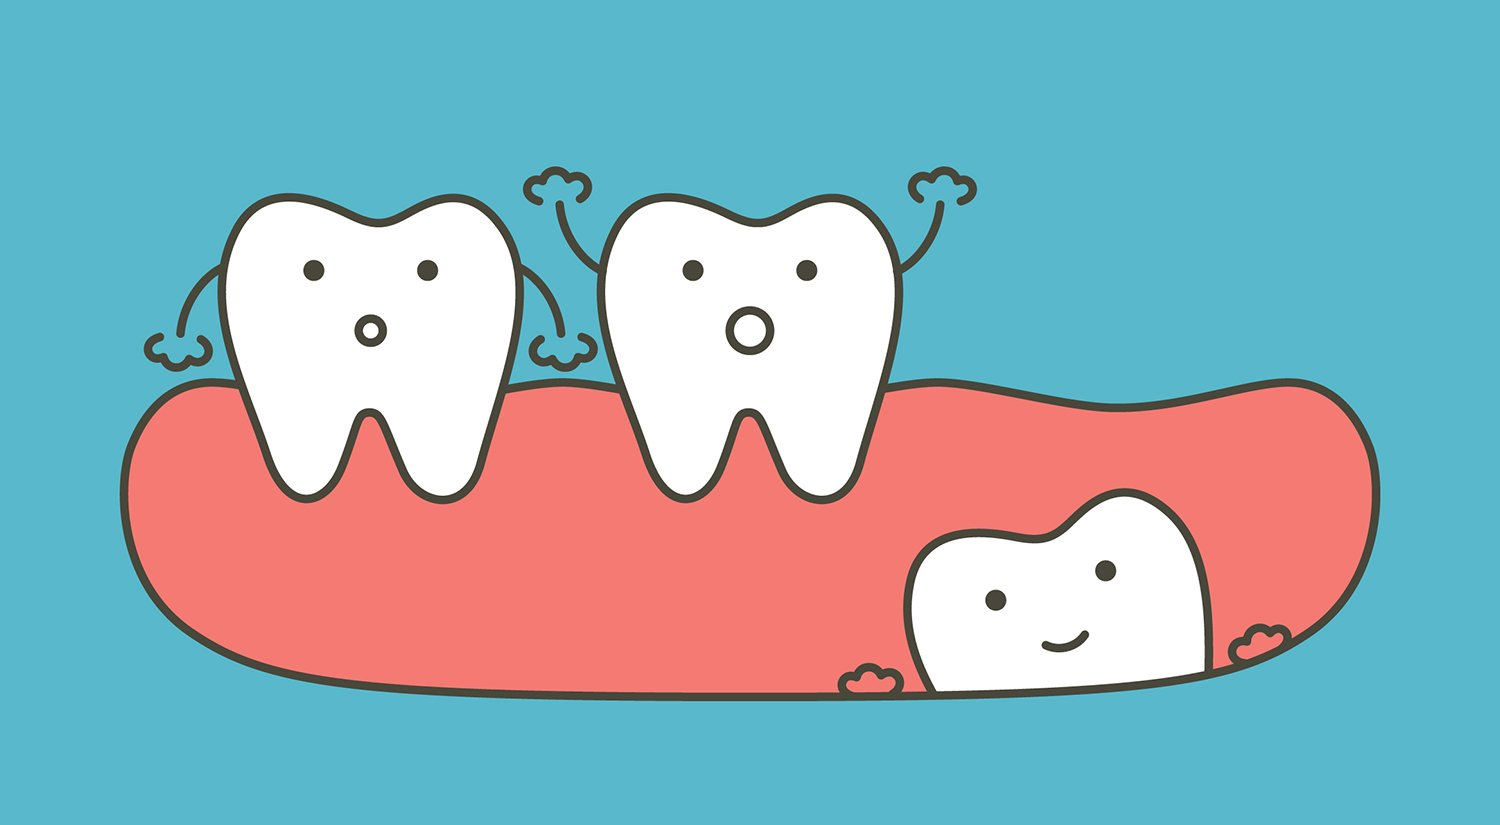 Wisdom Teeth Removal: Know Before You Go - Ask the Dentist